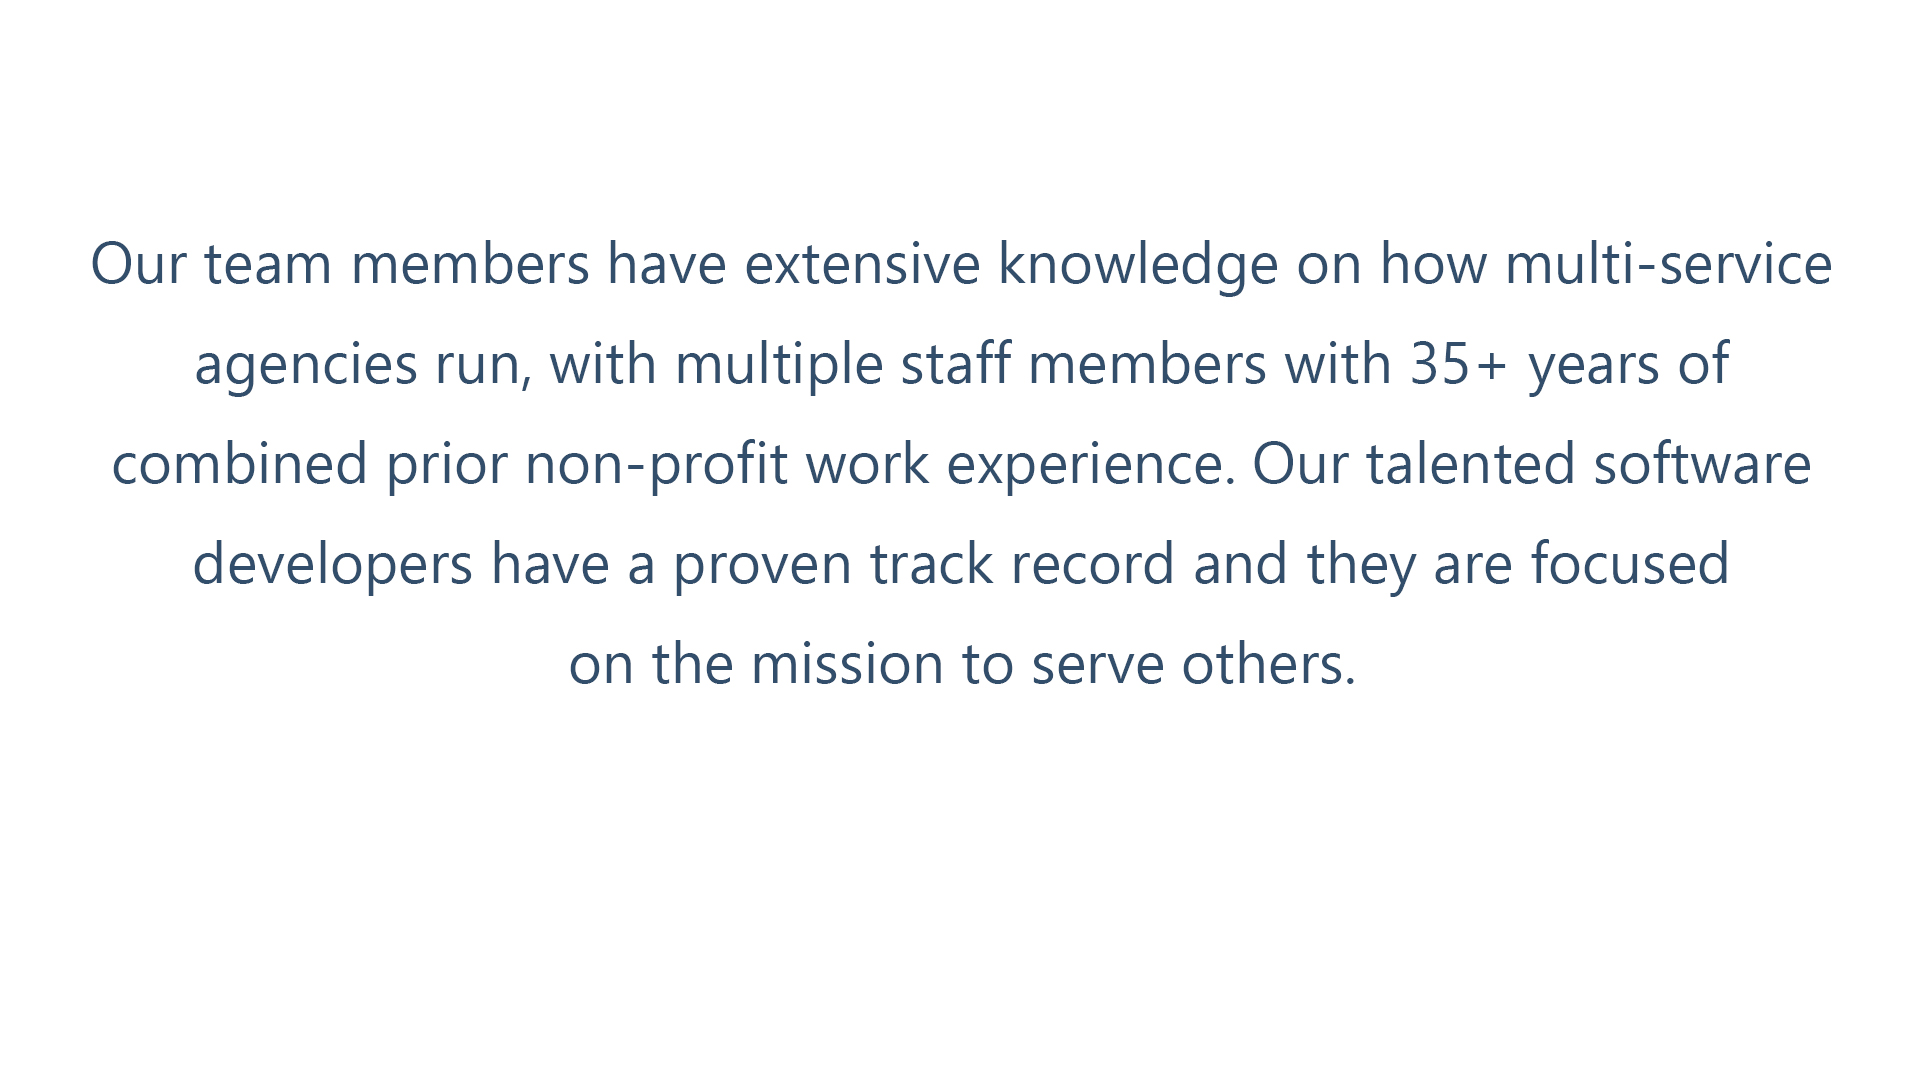 Our staff members have extensive knowledge of how multi-service agencies run. We have a combined 35 years of non-profit and community action agency experience.